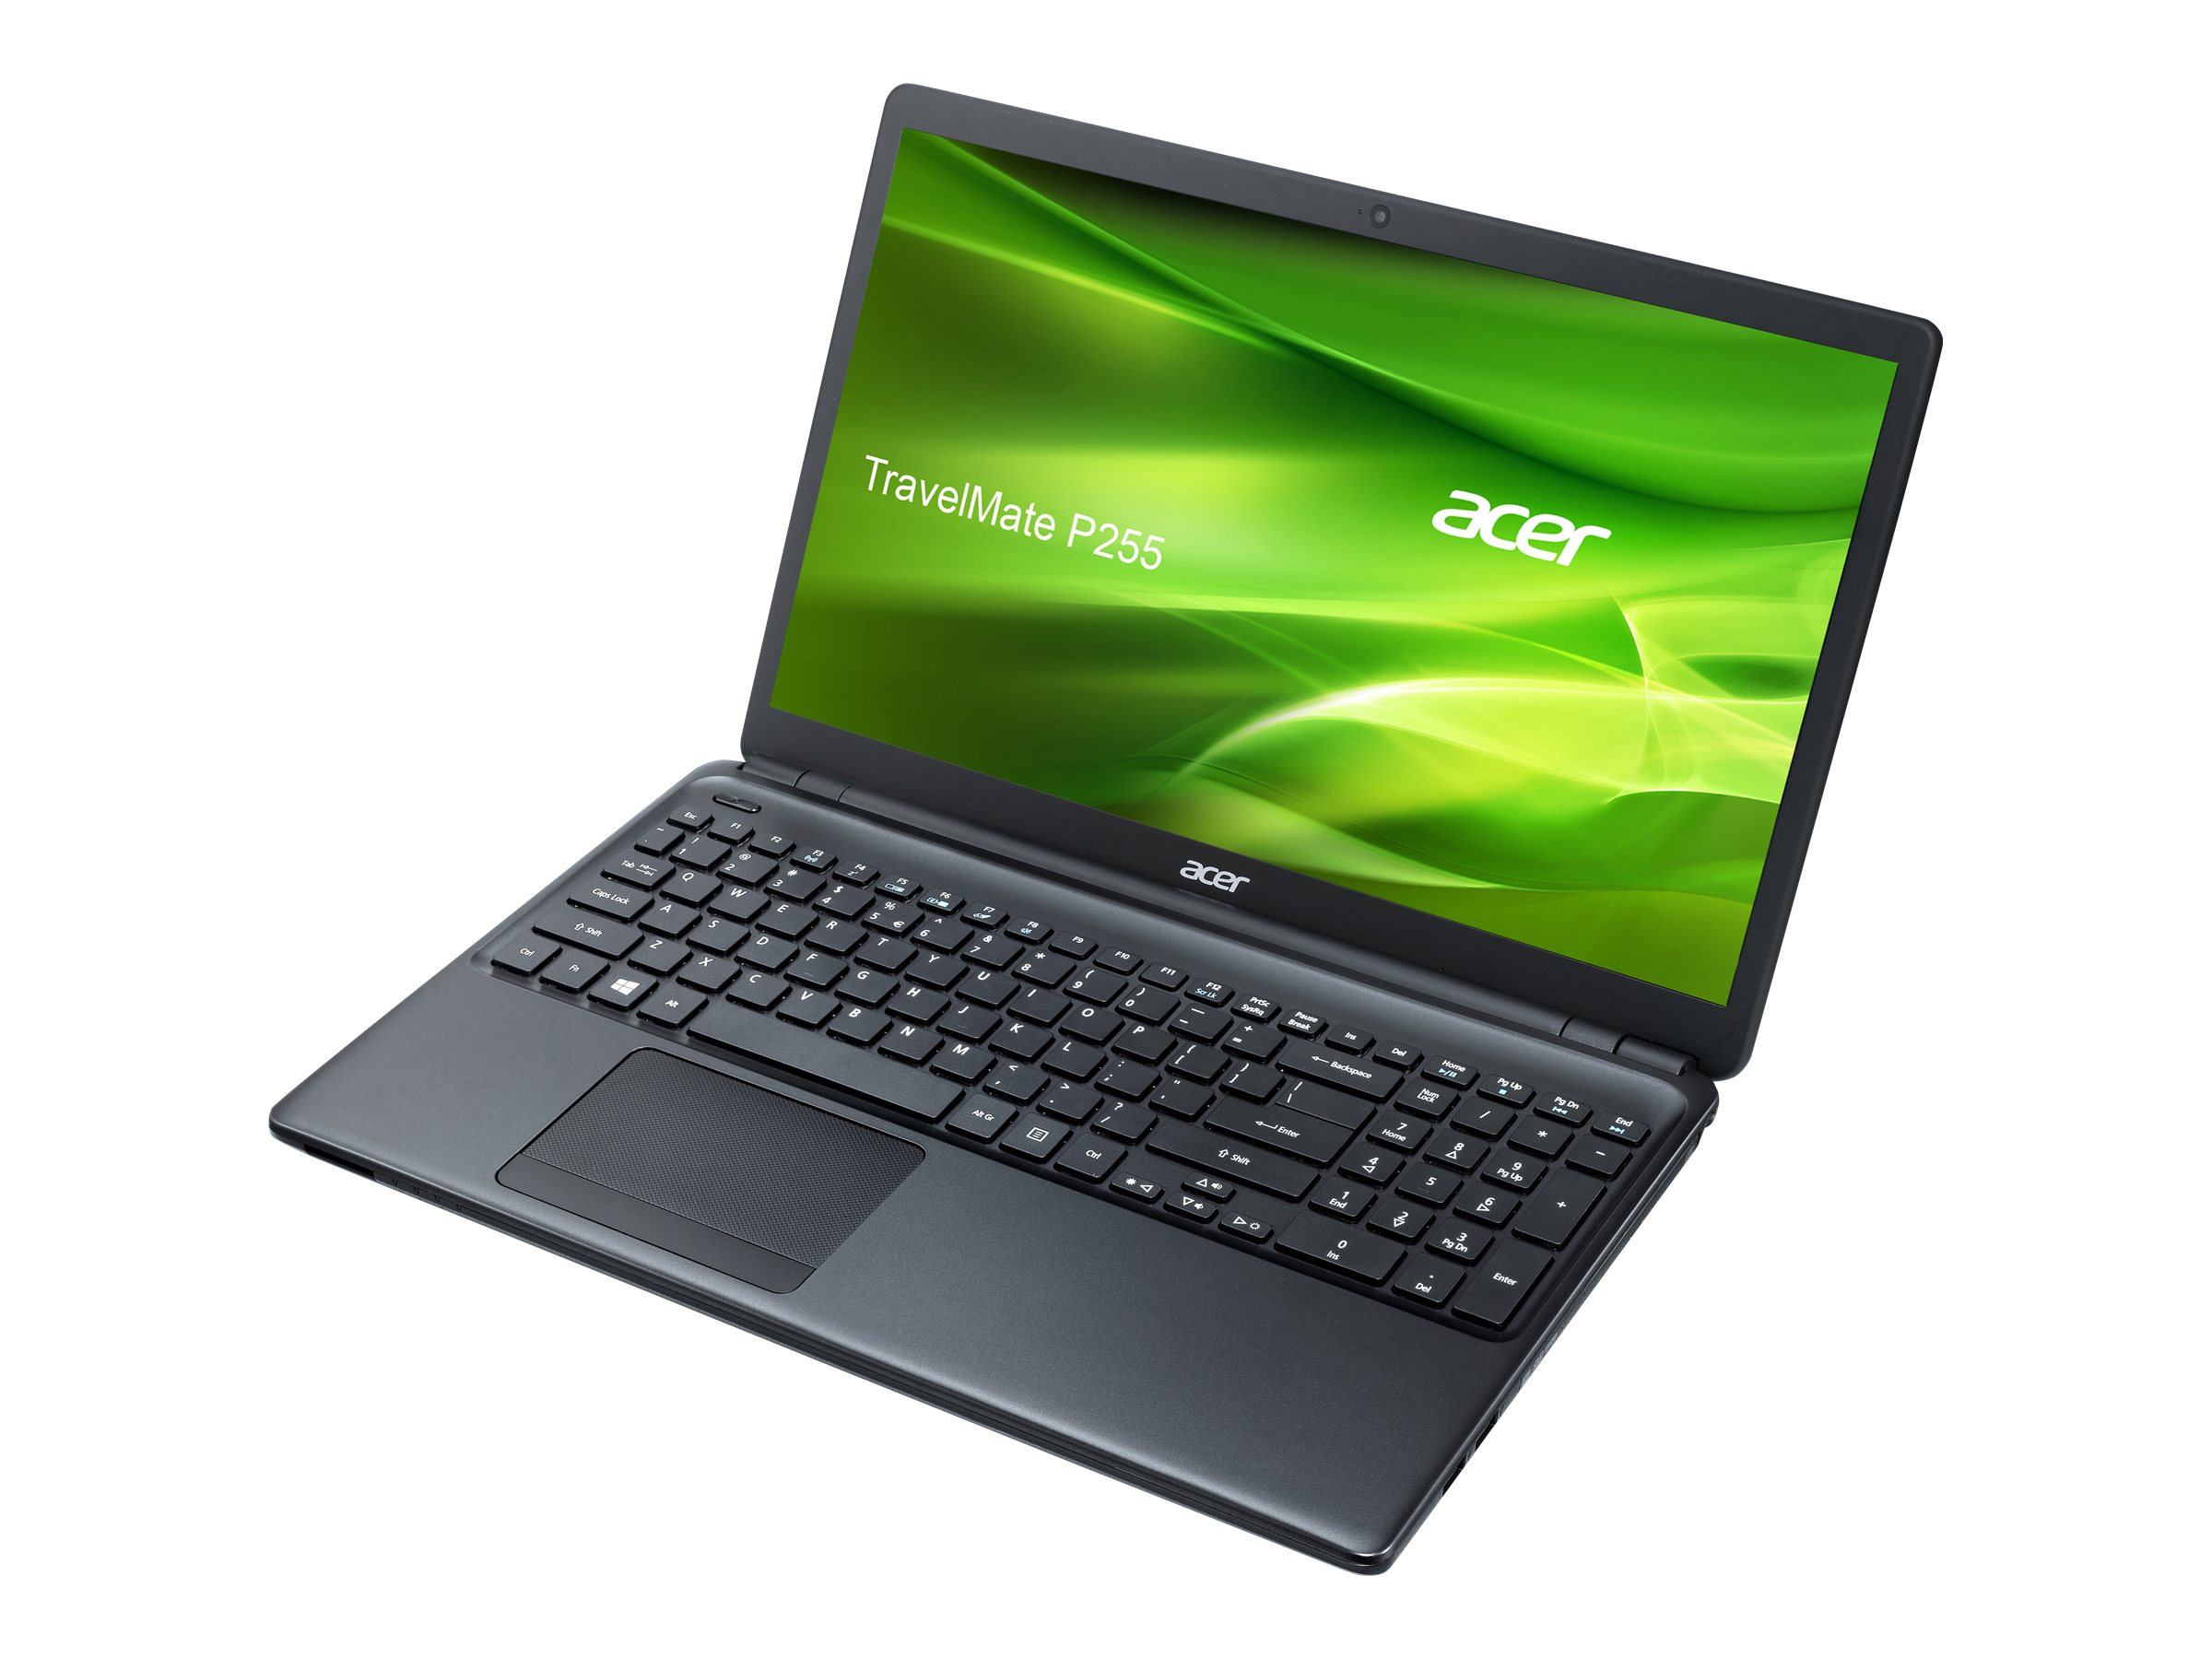 Acer TravelMate P255-MP-6686 1.7GHz Core i3 15.6in display, NX.V98AA.002, 17367651, Notebooks